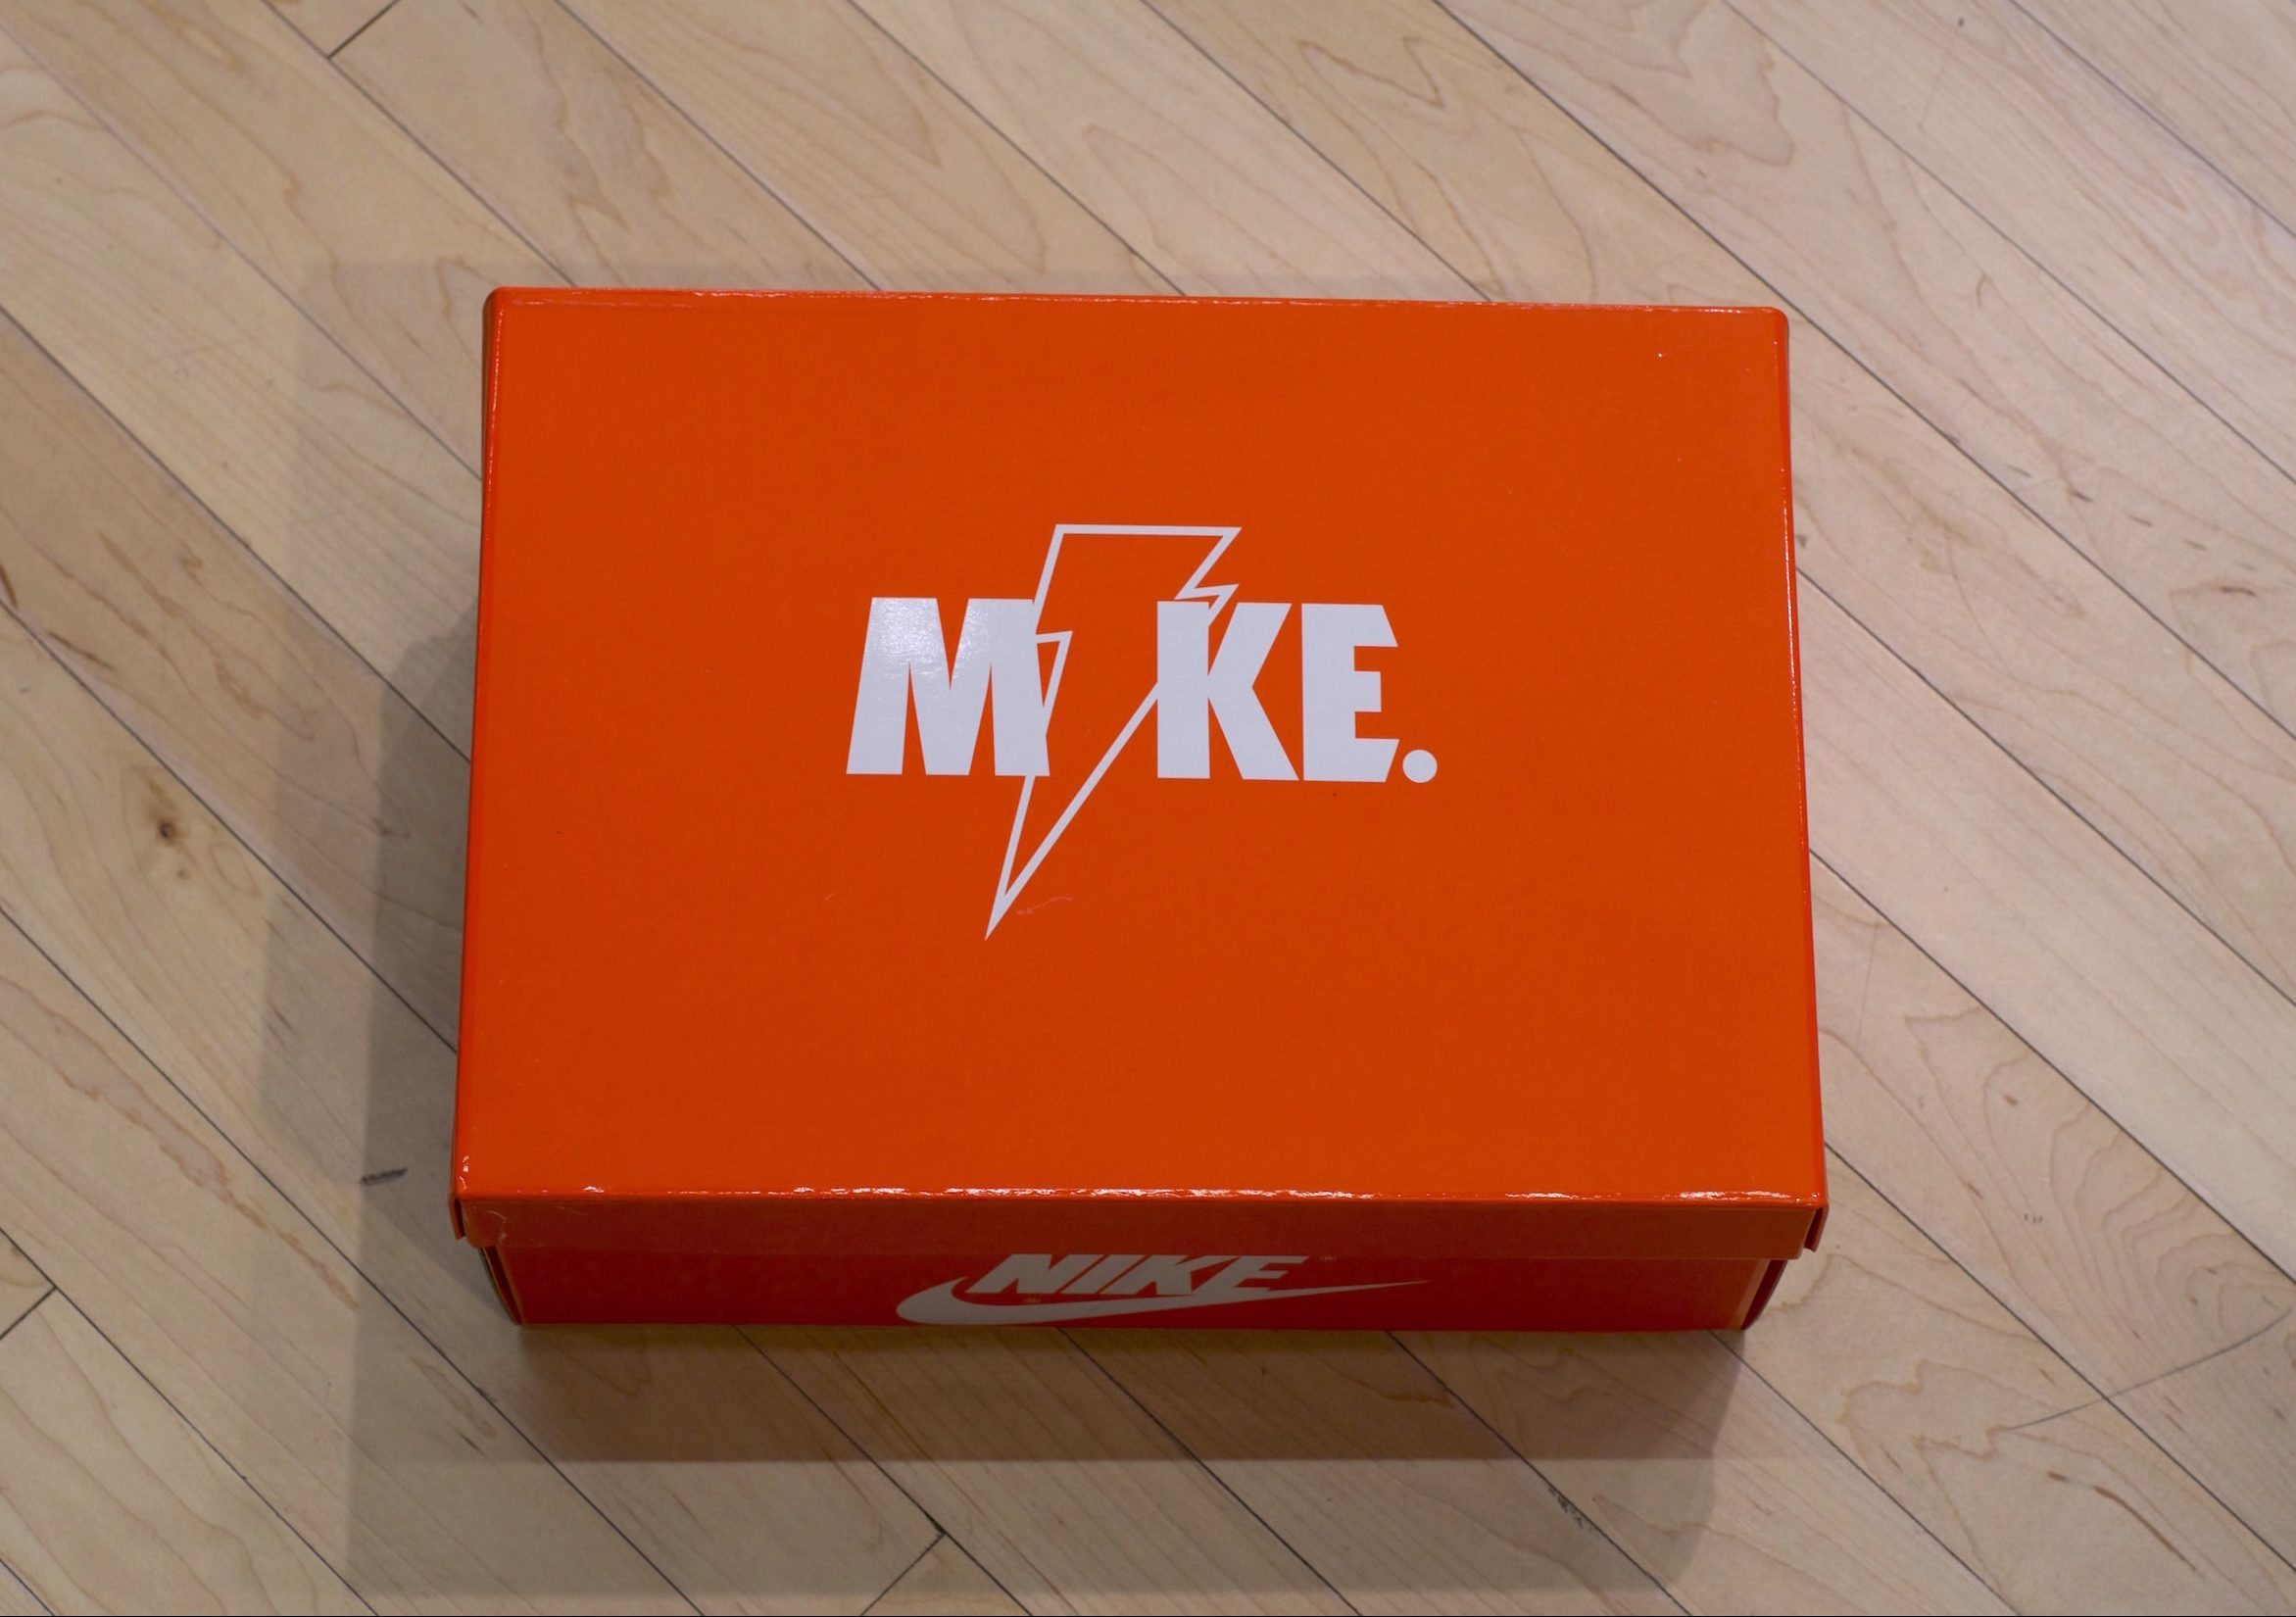 gatorade air jordan 1 like mike box